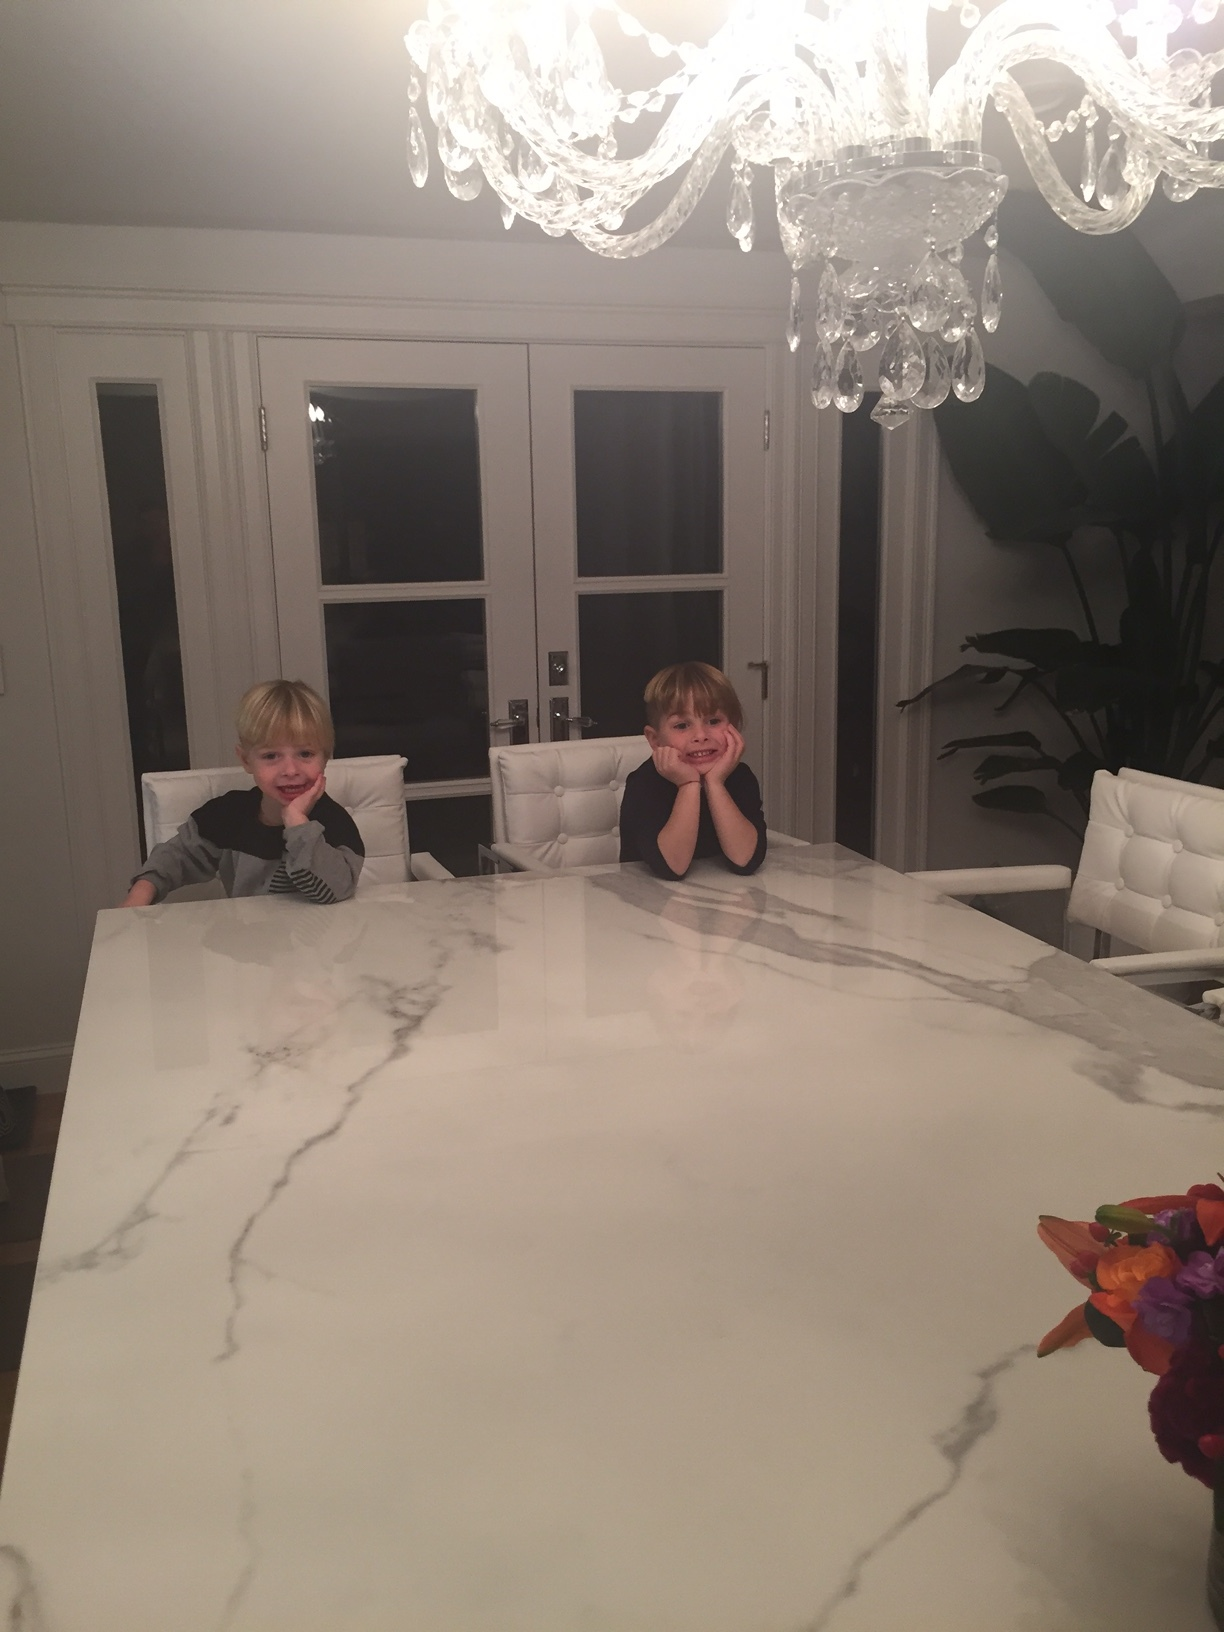 My boys sitting at the counter as soon as they were installed.... What I've been waiting for!